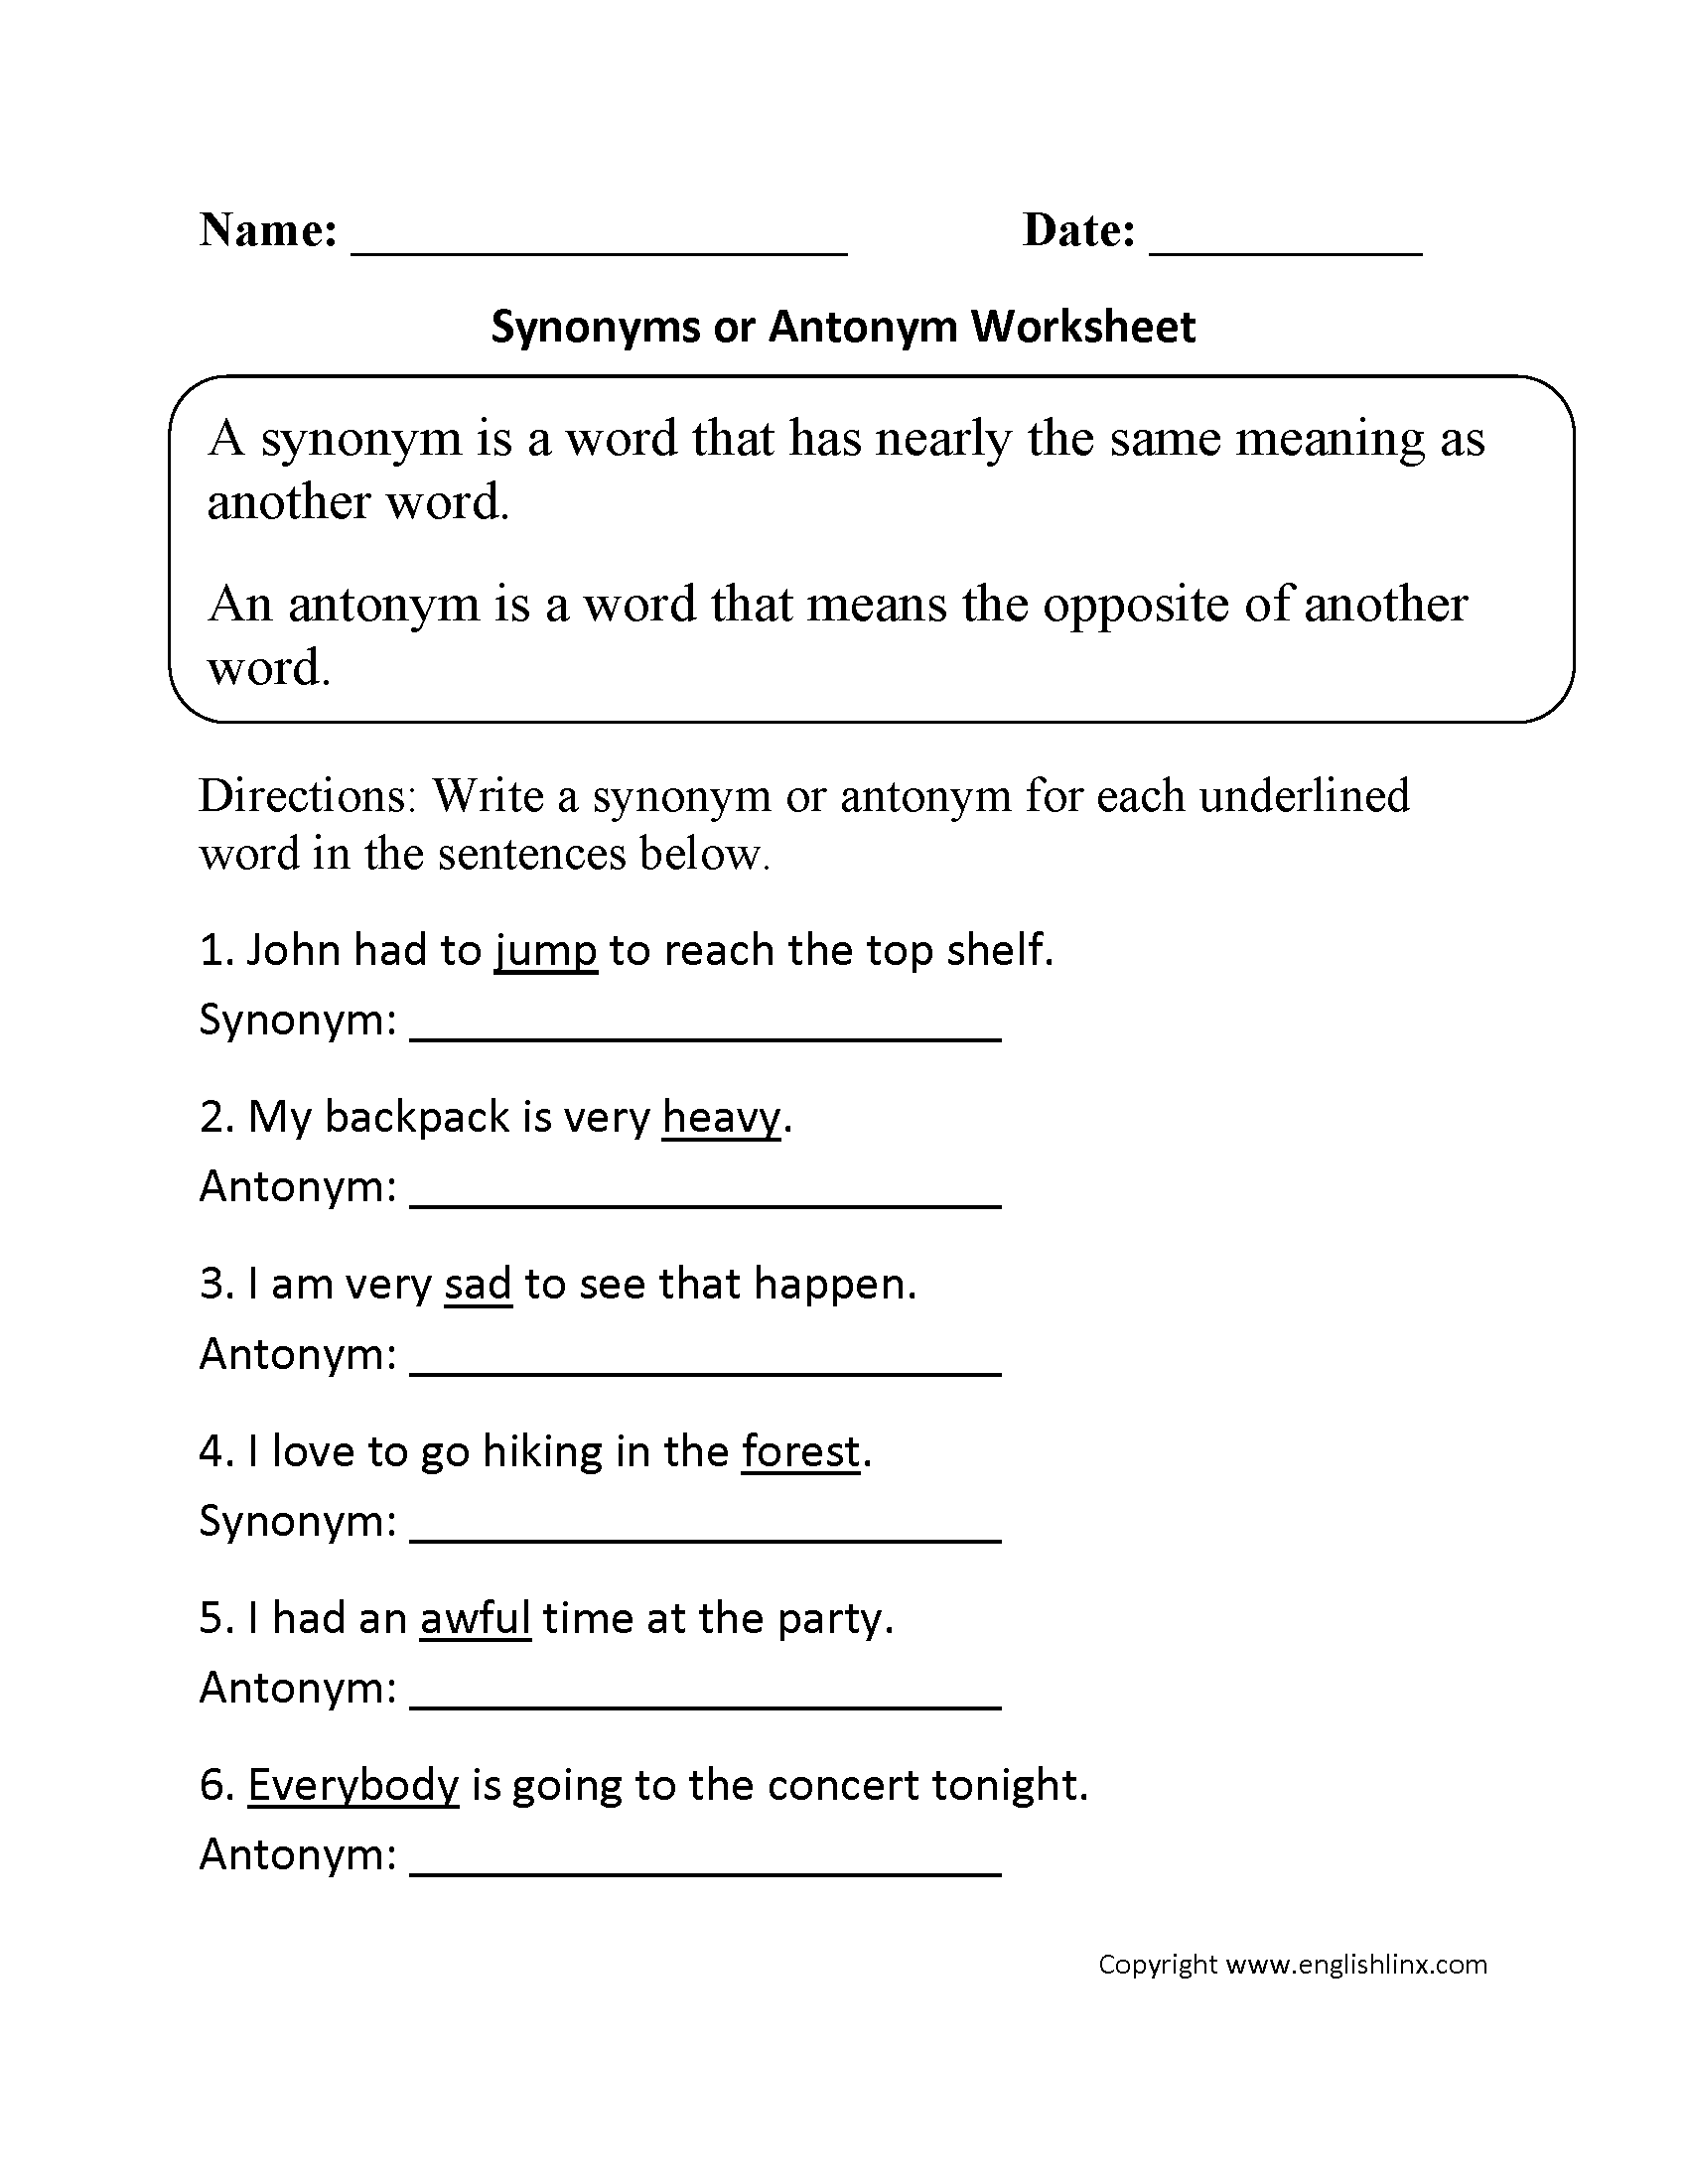 Worksheets Antonyms And Synonyms vocabulary worksheets synonym and antonym or worksheet